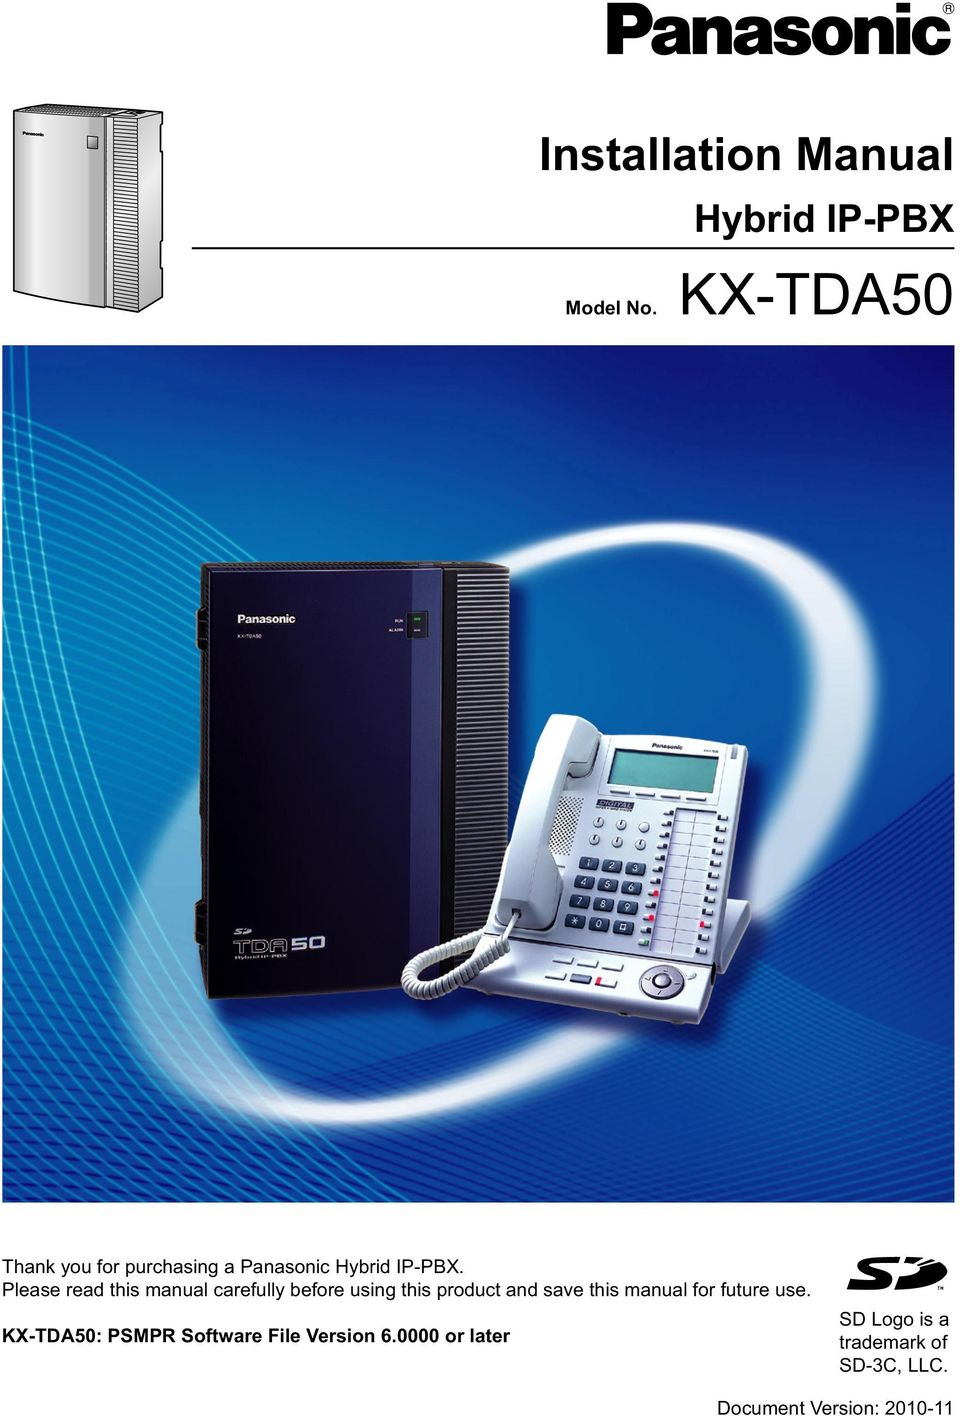 kx tda50 installation manual hybrid ip pbx model no pdf rh docplayer net kx-tda50g user manual kx-tda50 pc programming manual